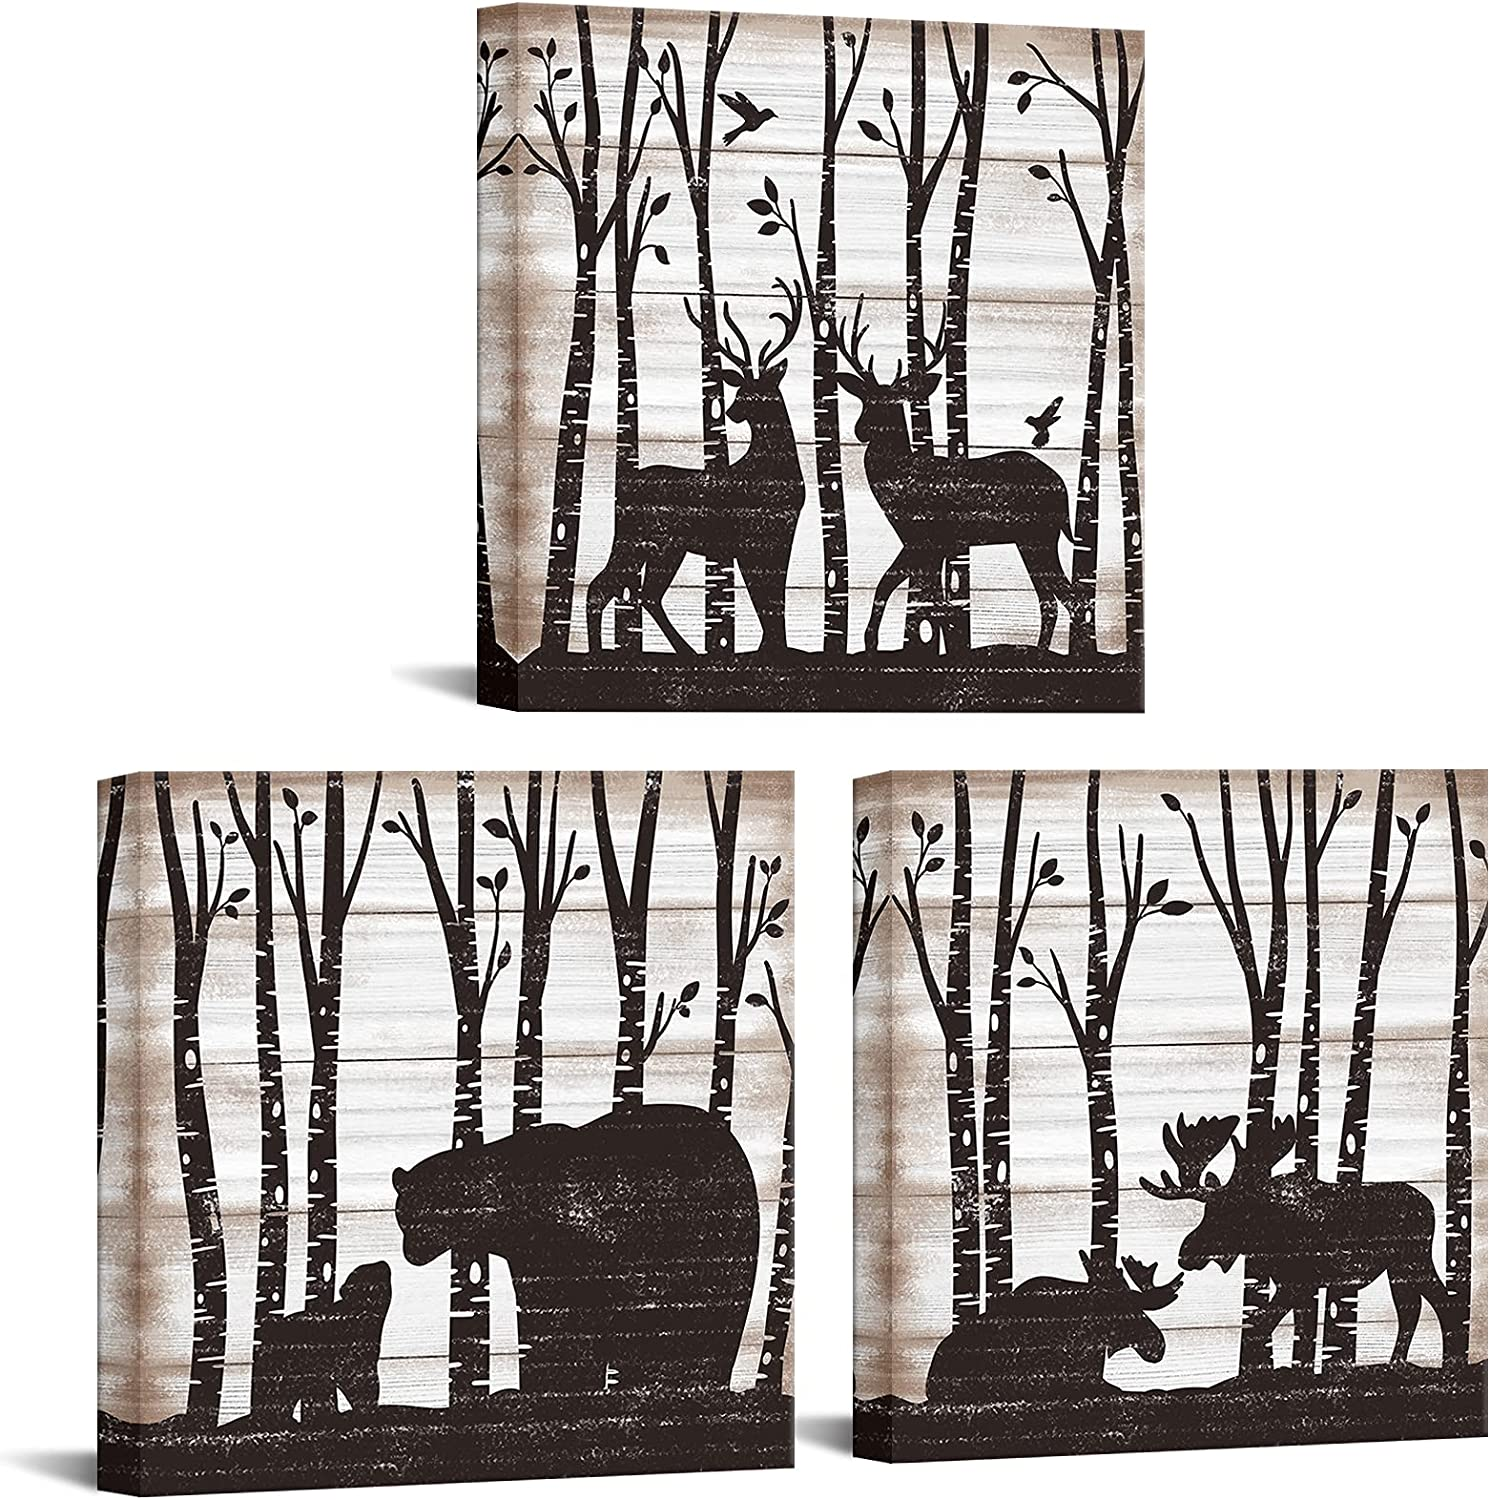 OuElegent 3 Piece Wild Animal Canvas Wall Art Black Bear Deer Moose Family in Forest Rustic Wood Painting Picture Abstract Artwork Prints for Home Farmhouse Bathroom Decor Framed Ready to Hang